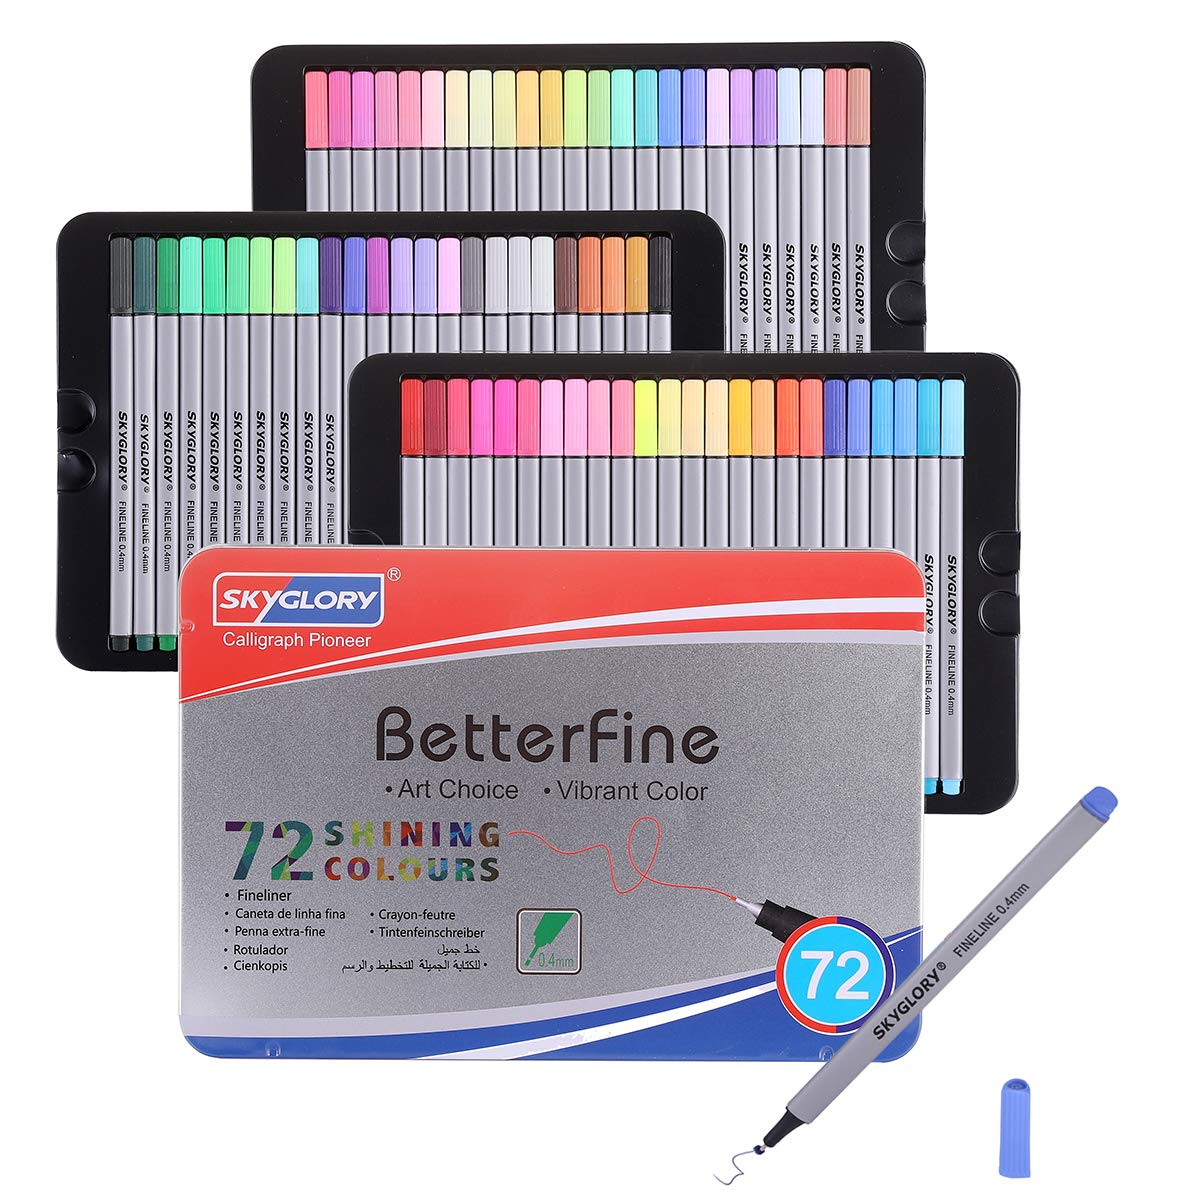 72 Color No Bleed Through Pens Markers Set 0.4 mm Fine Line Colored Sketch Writing Drawing Pen for Bullet Journal Planner Note Taking and Coloring Book